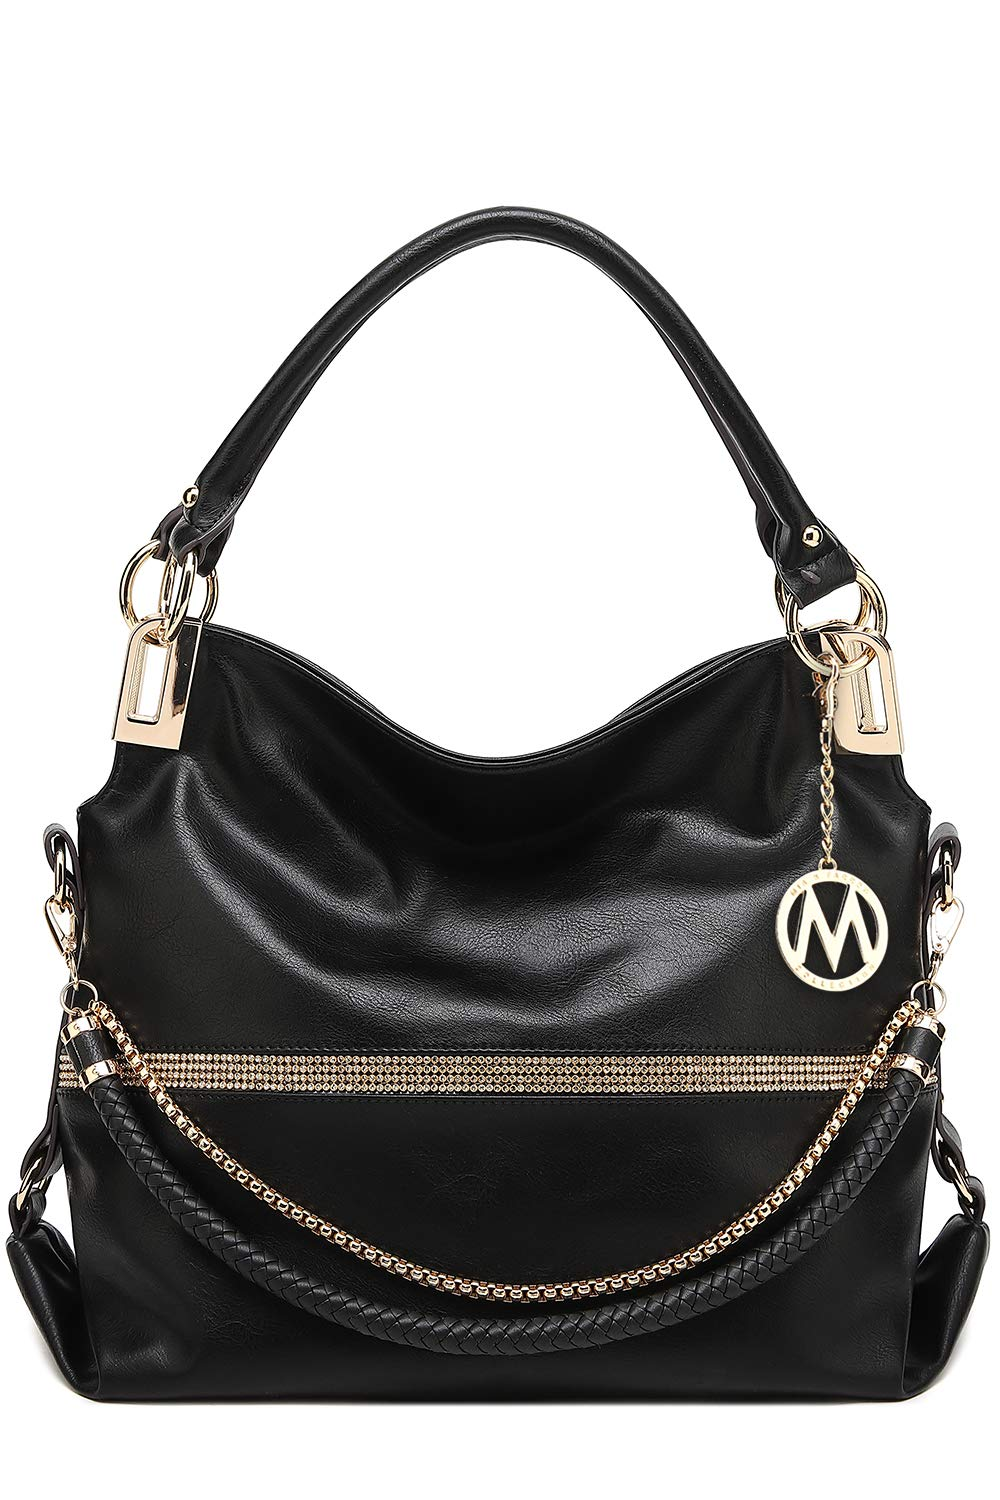 Mia K. Collection Hobo Crossbody Bag for Women - Satchel Shoulder Handbag - Vegan Leather Top Handle Purse Removable Strap - wiihuu